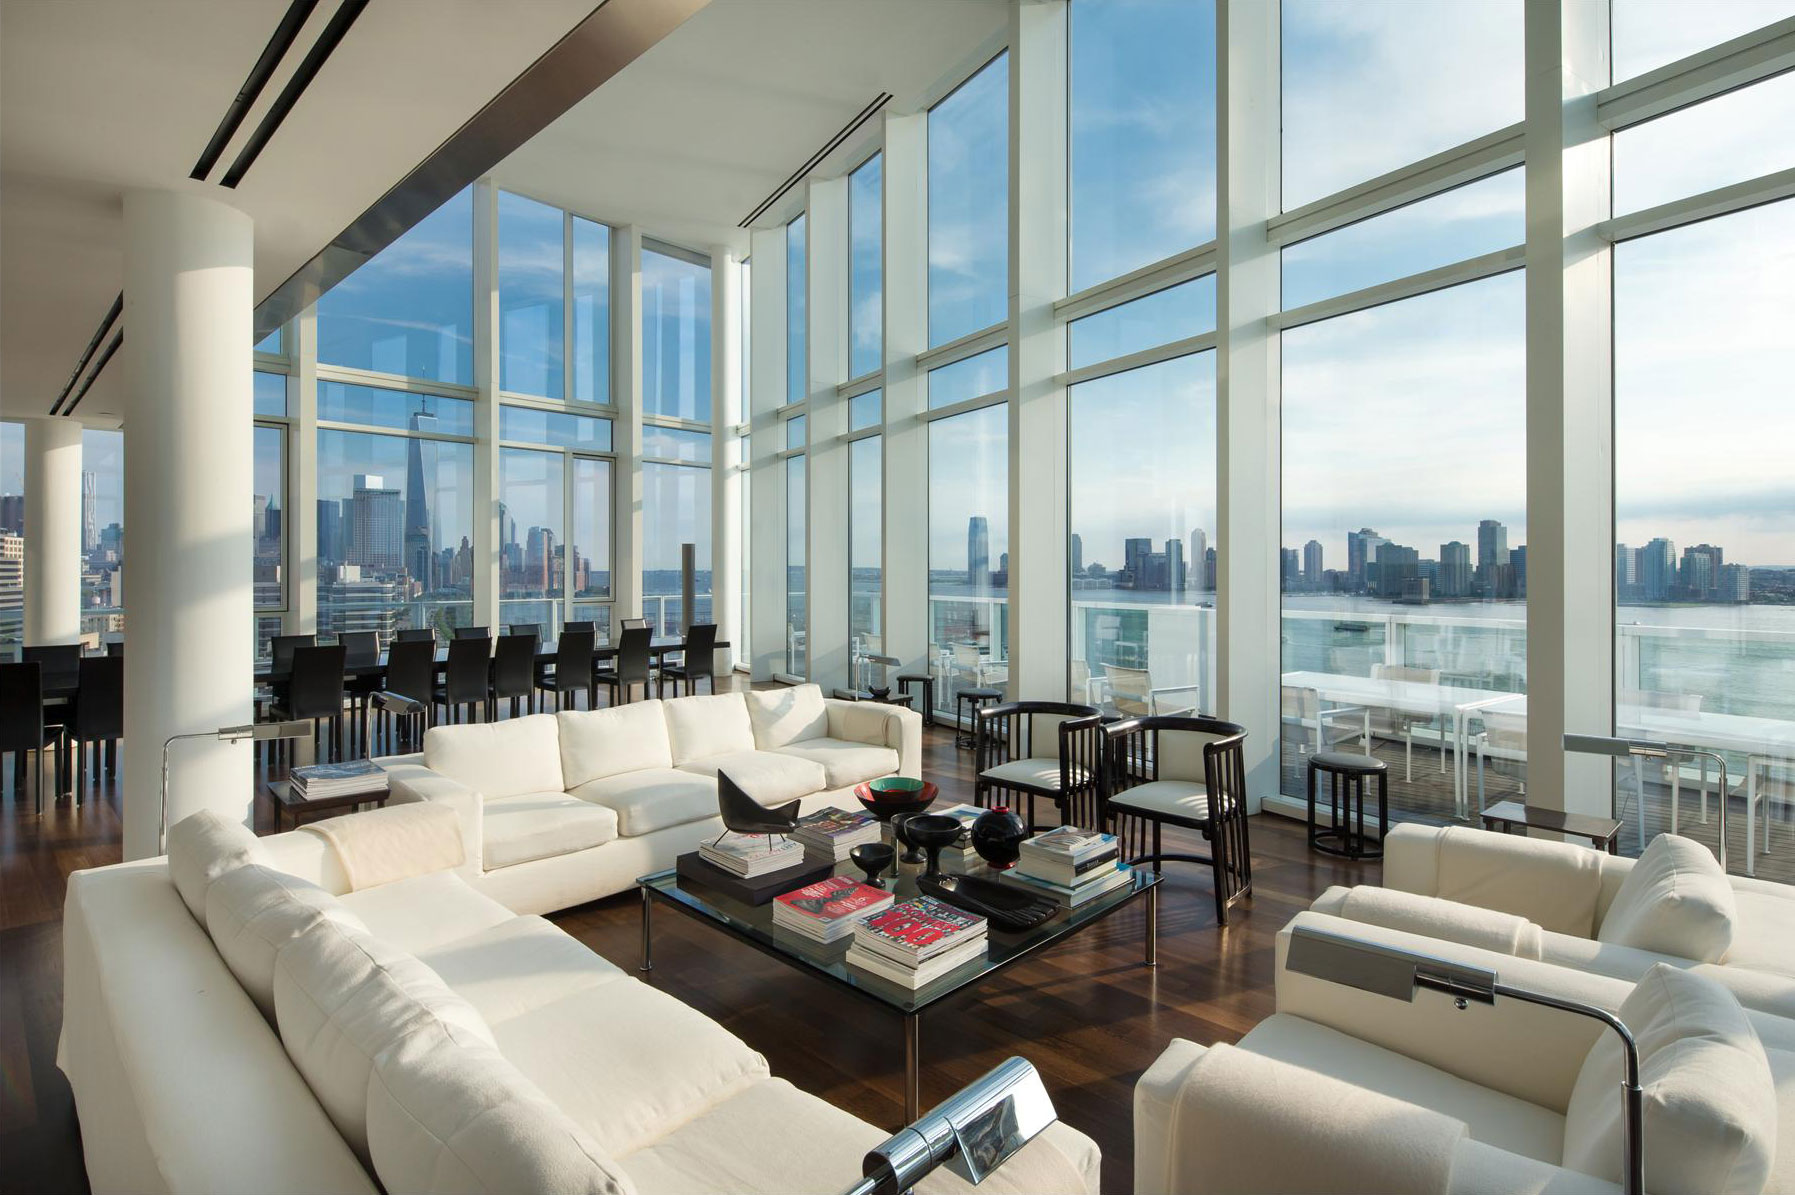 13 Stunning Apartments In New York: Luxurious Apartment Overlooking The Hudson River In Manhattan